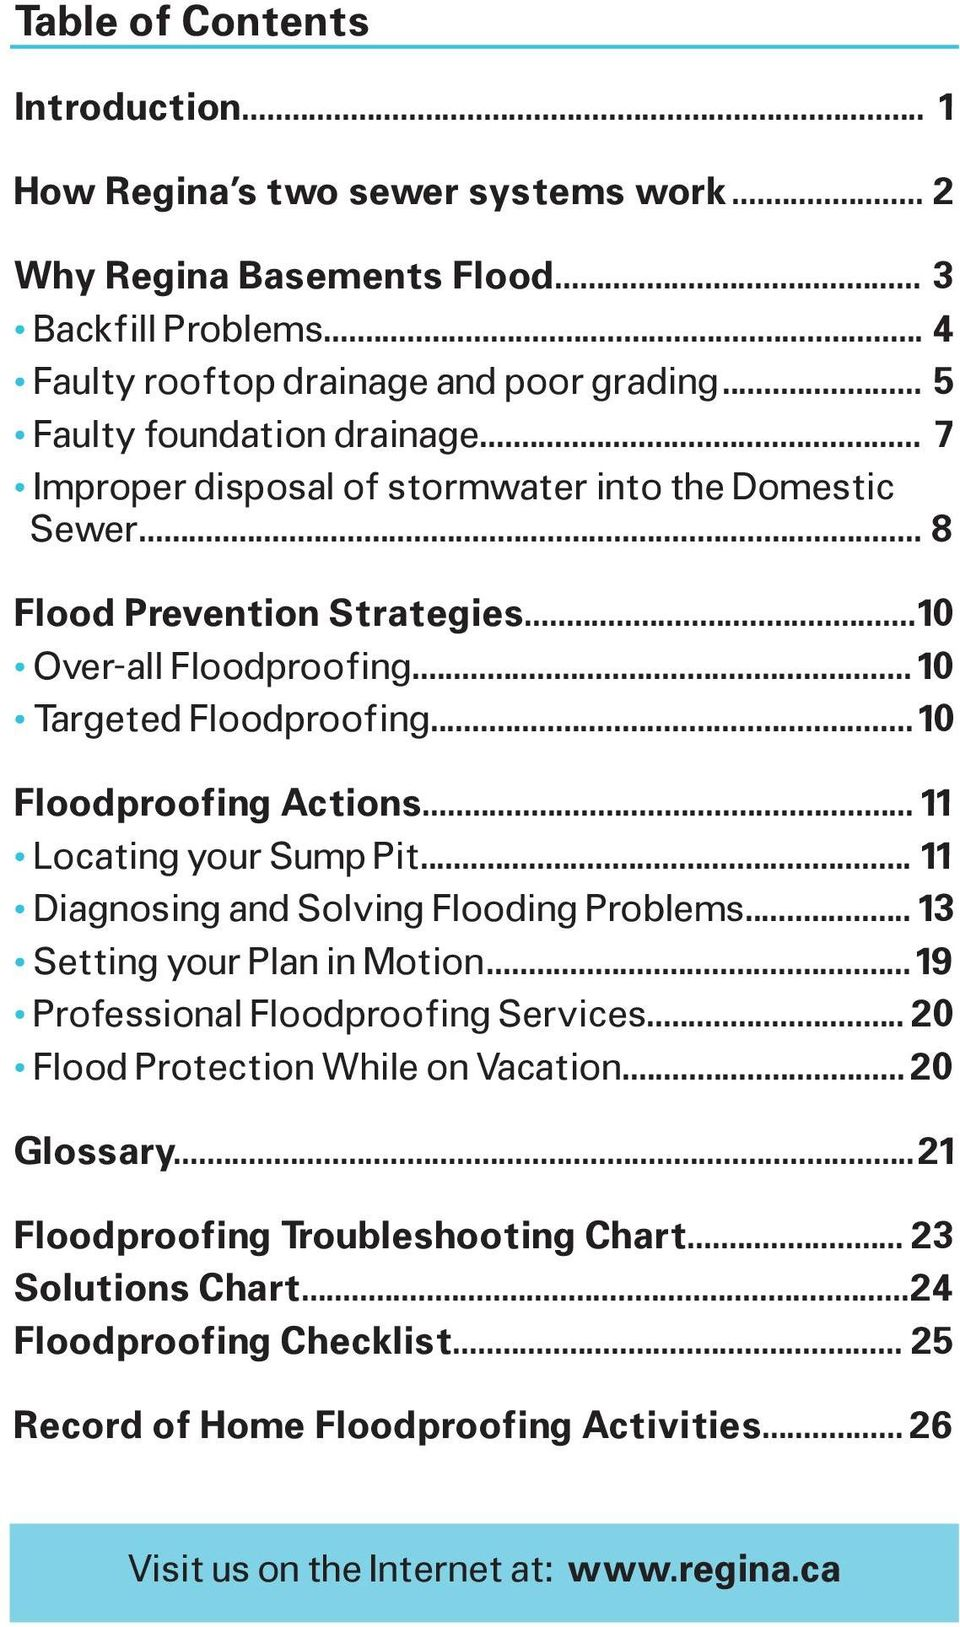 .. 10 Floodproofing Actions... 11 Locating your Sump Pit... 11 Diagnosing and Solving Flooding Problems... 13 Setting your Plan in Motion... 19 Professional Floodproofing Services.